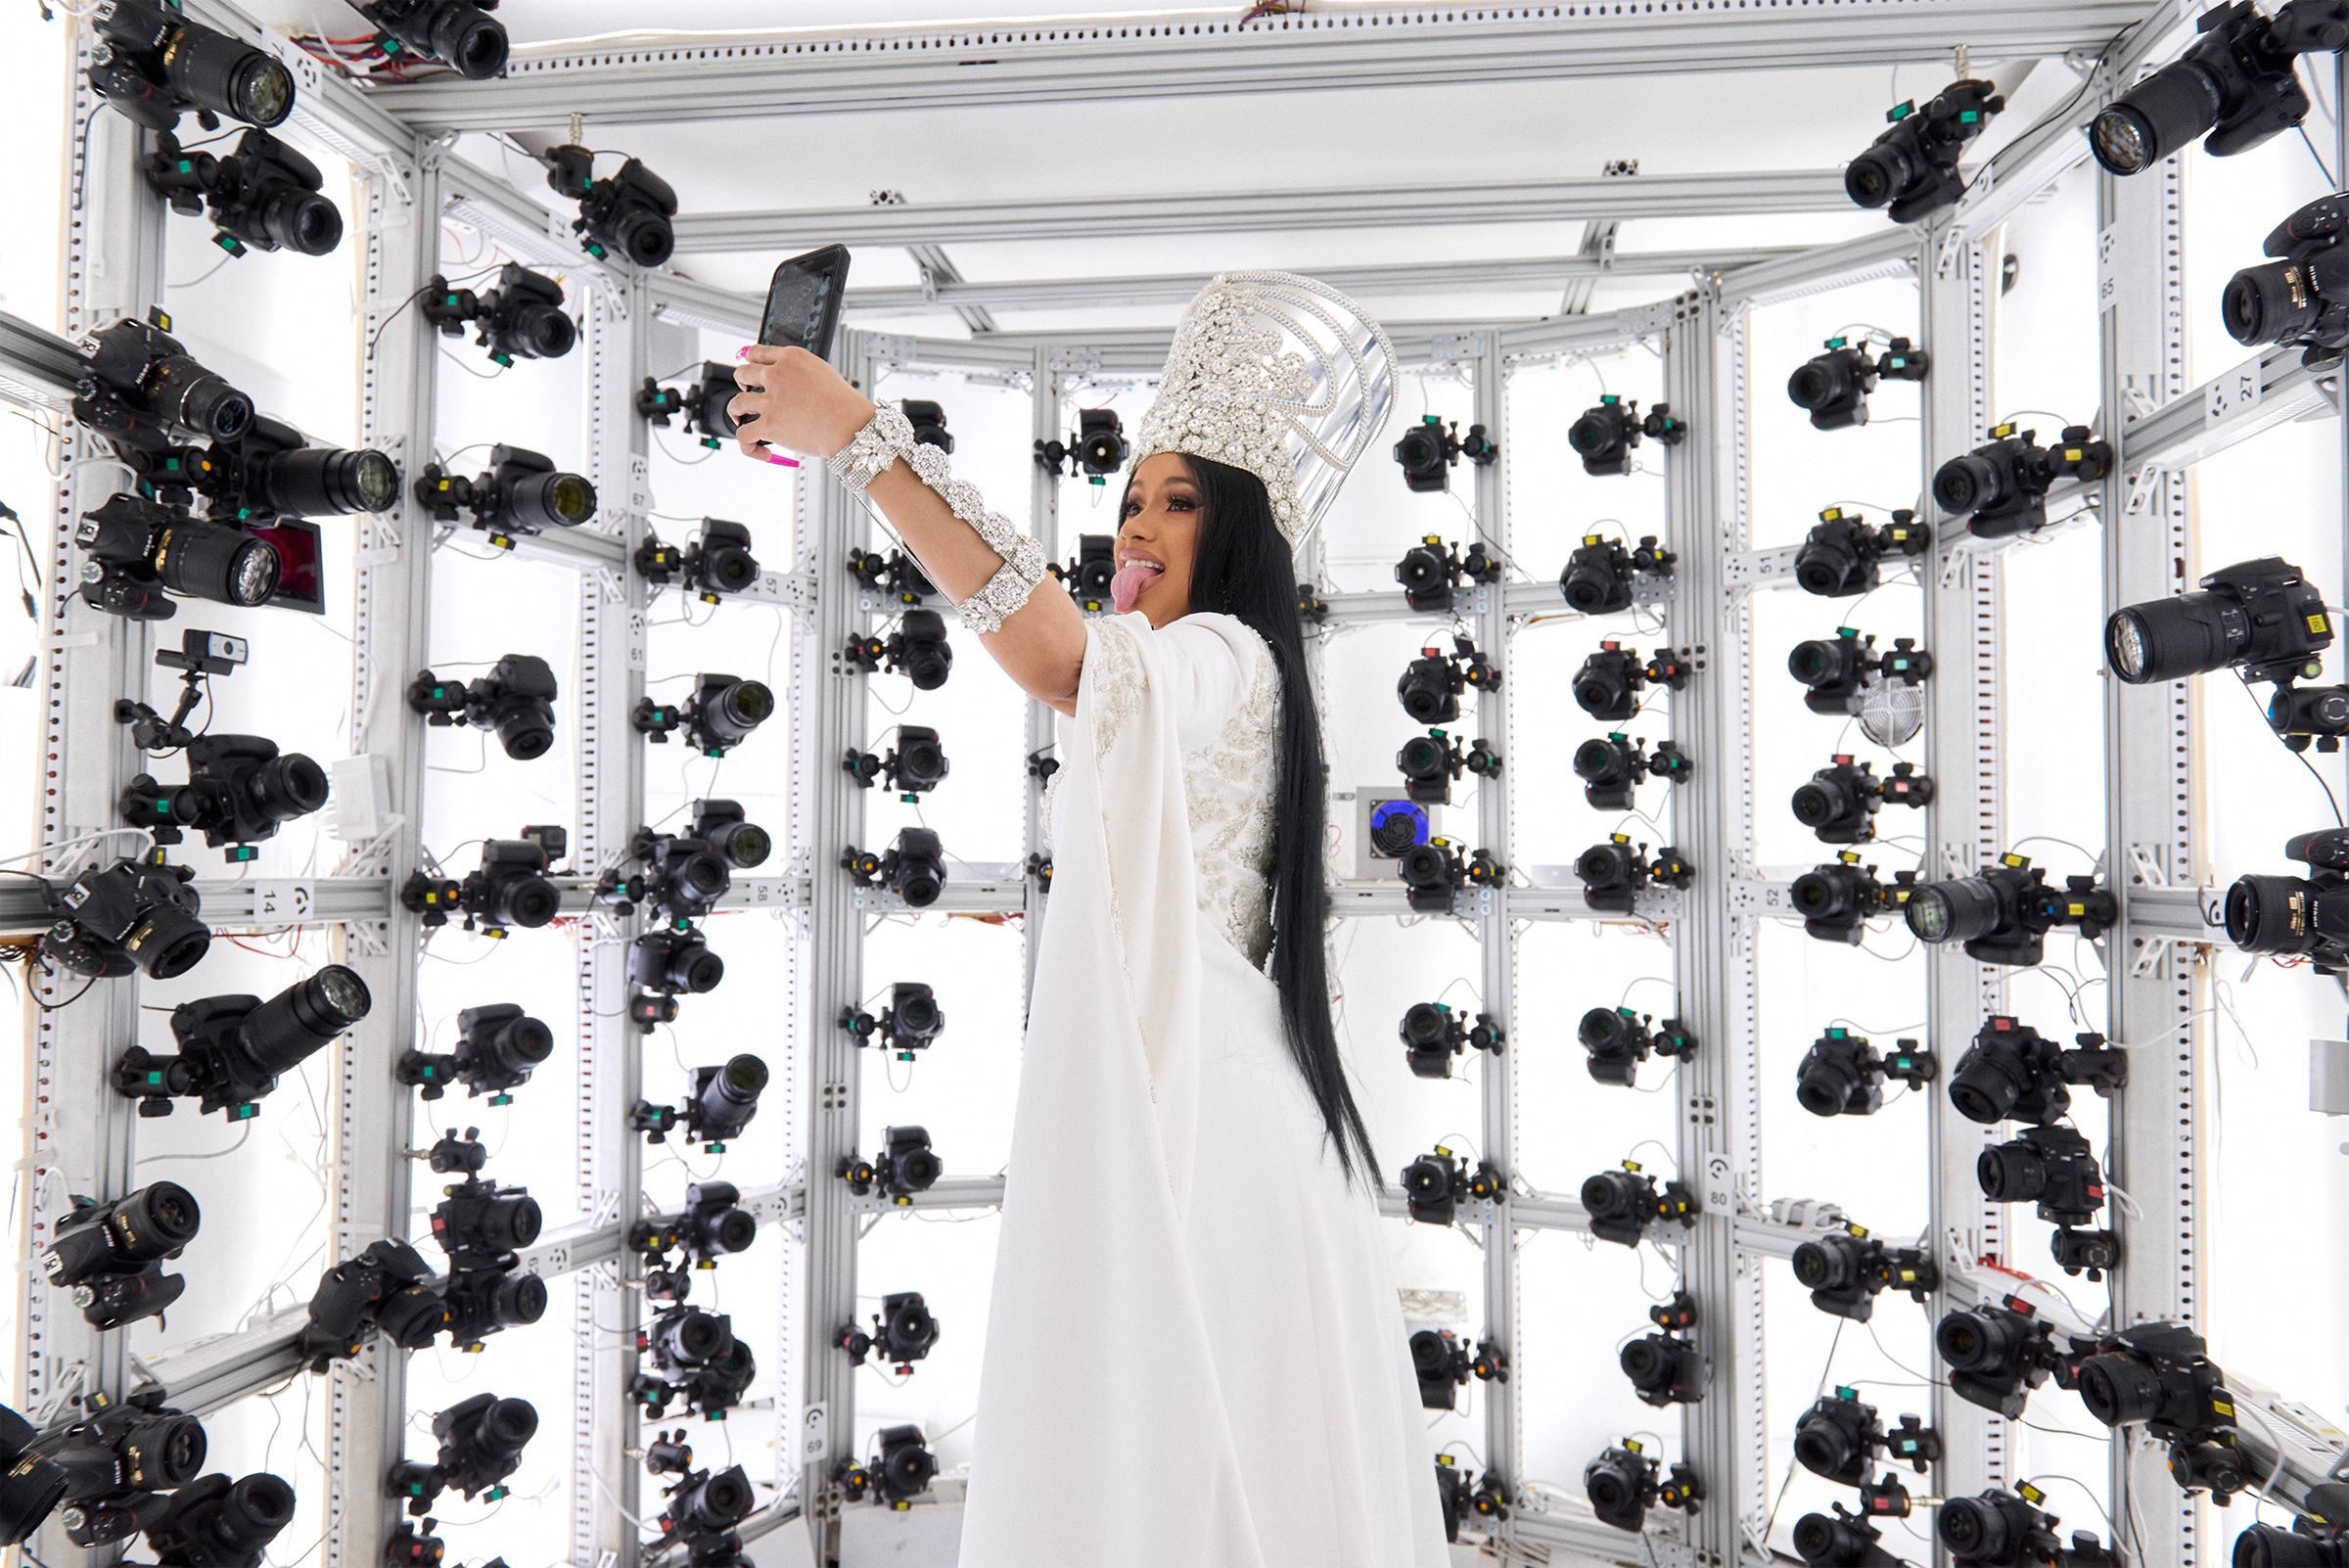 Cardi B in the SLR photo-booth